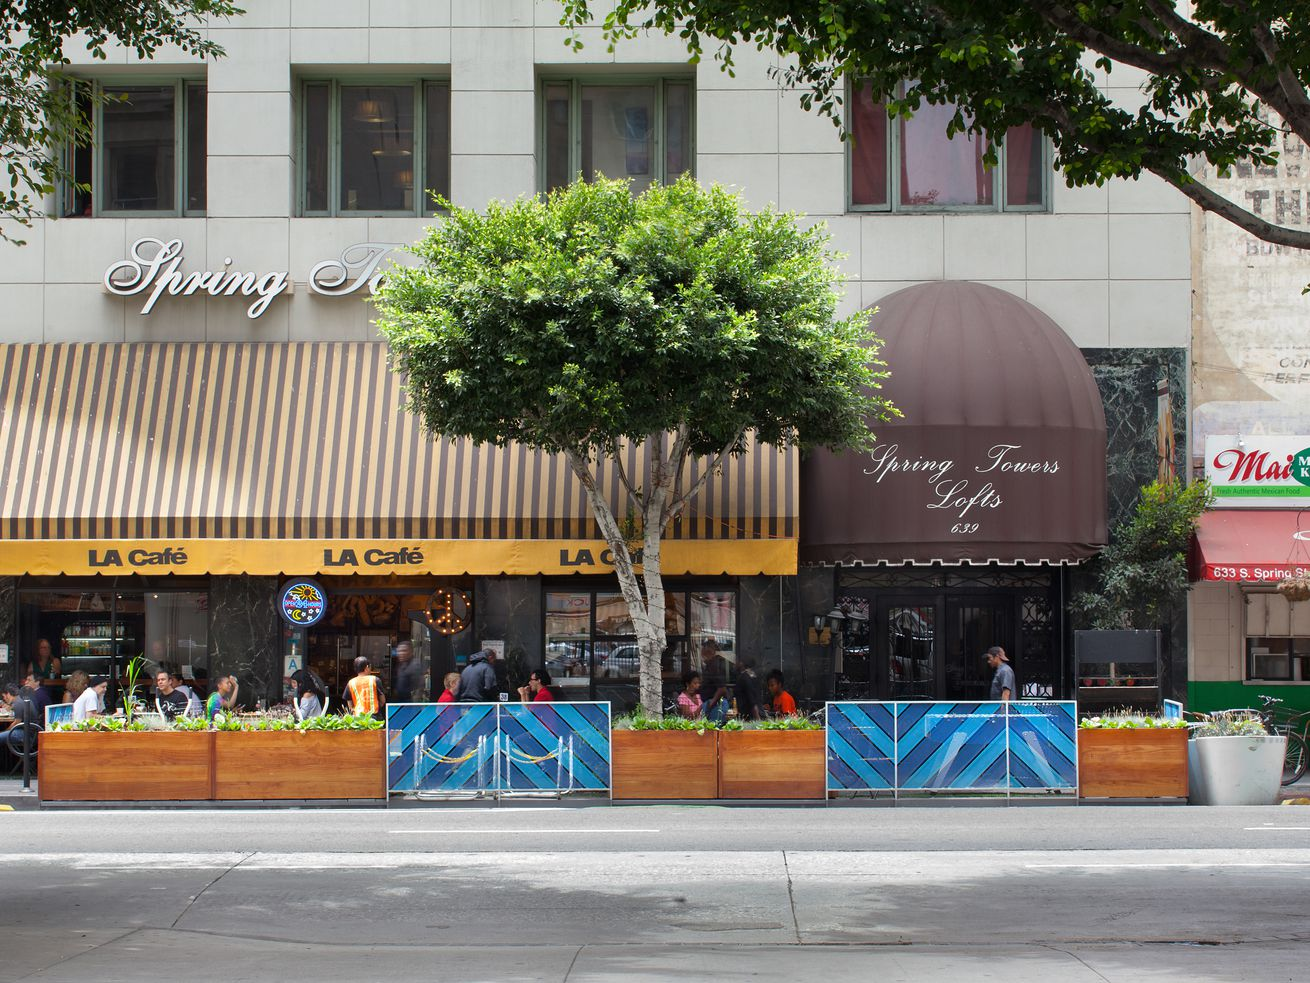 A parklet on Spring Street was constructed through the People St program in 2013.